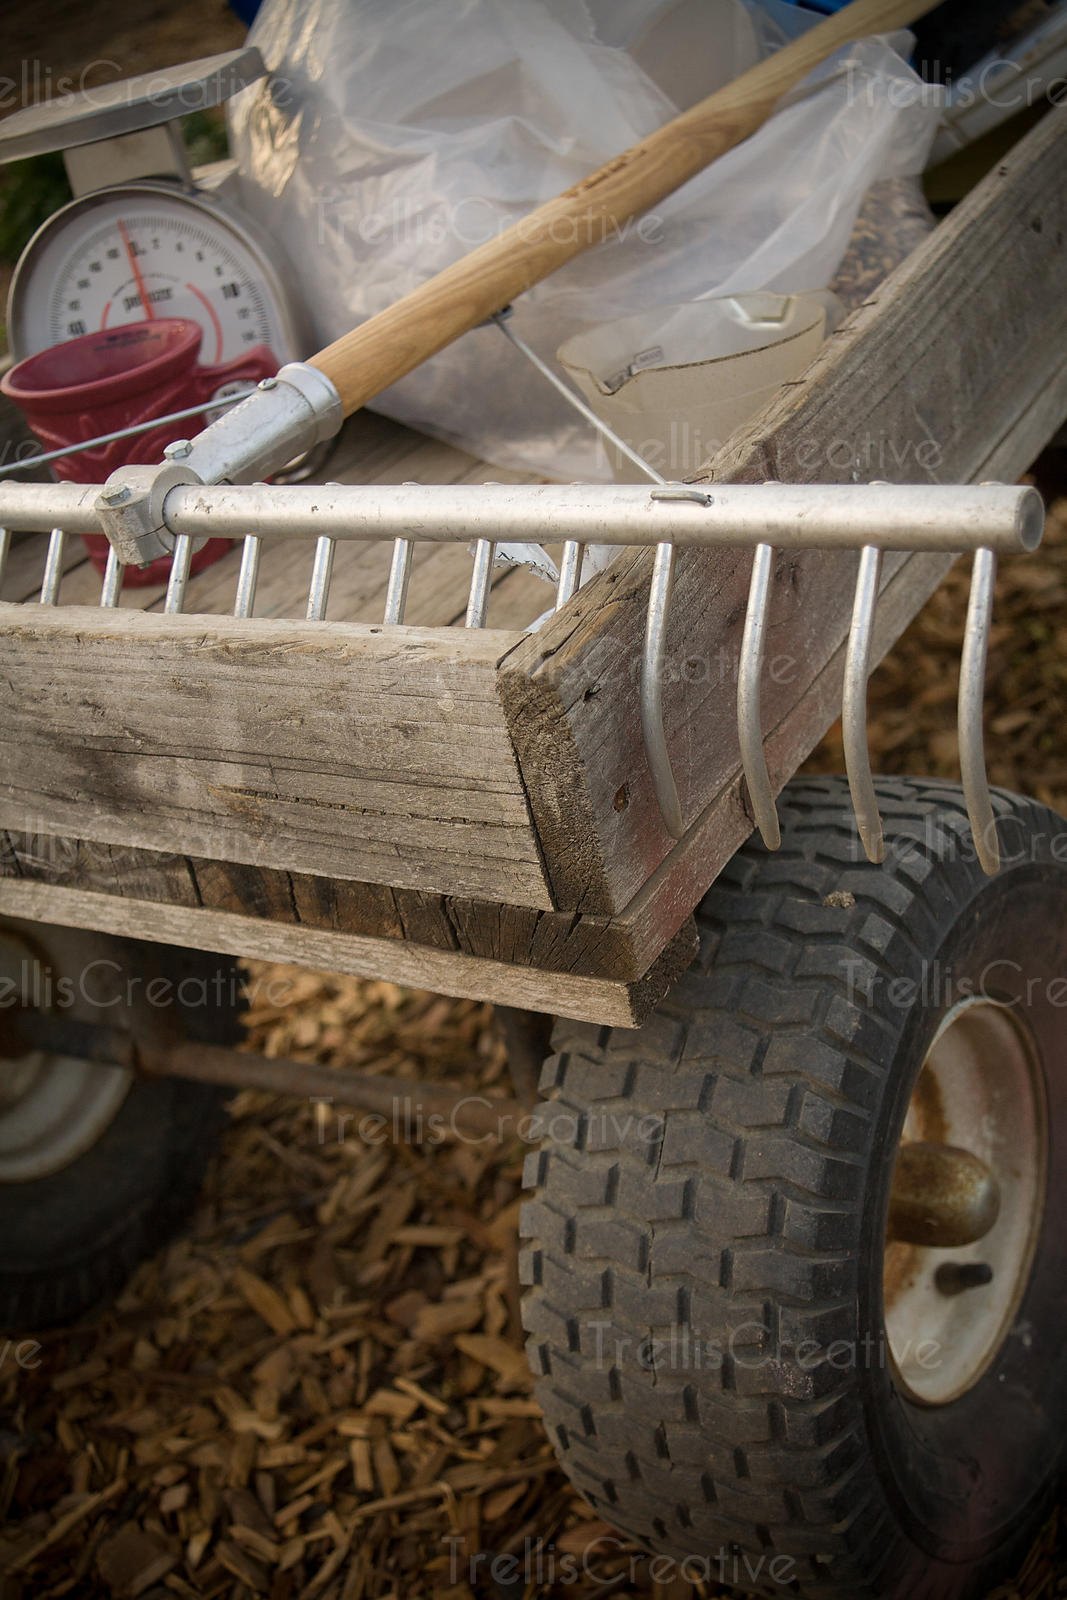 Wooden wagon with large metal rake, scale and plastic wrap inside.